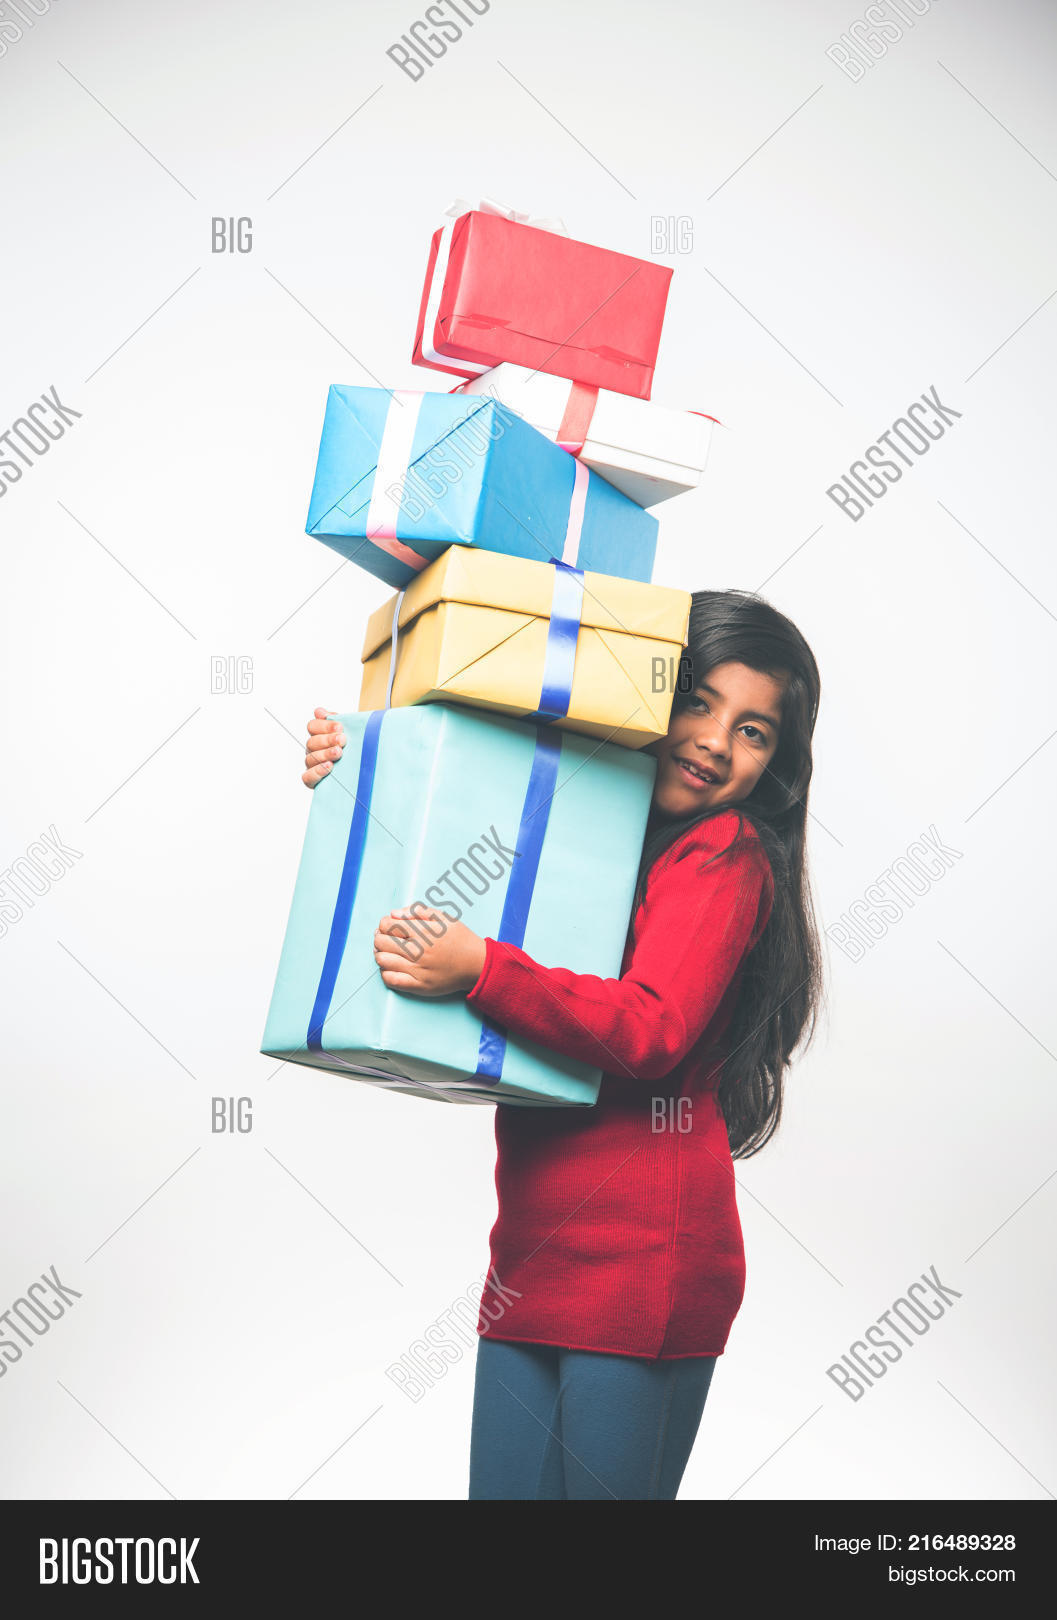 ec5968d7cdc5 Little Indian girl holding christmas gifts in red cloths or santa clause  hat and attire,